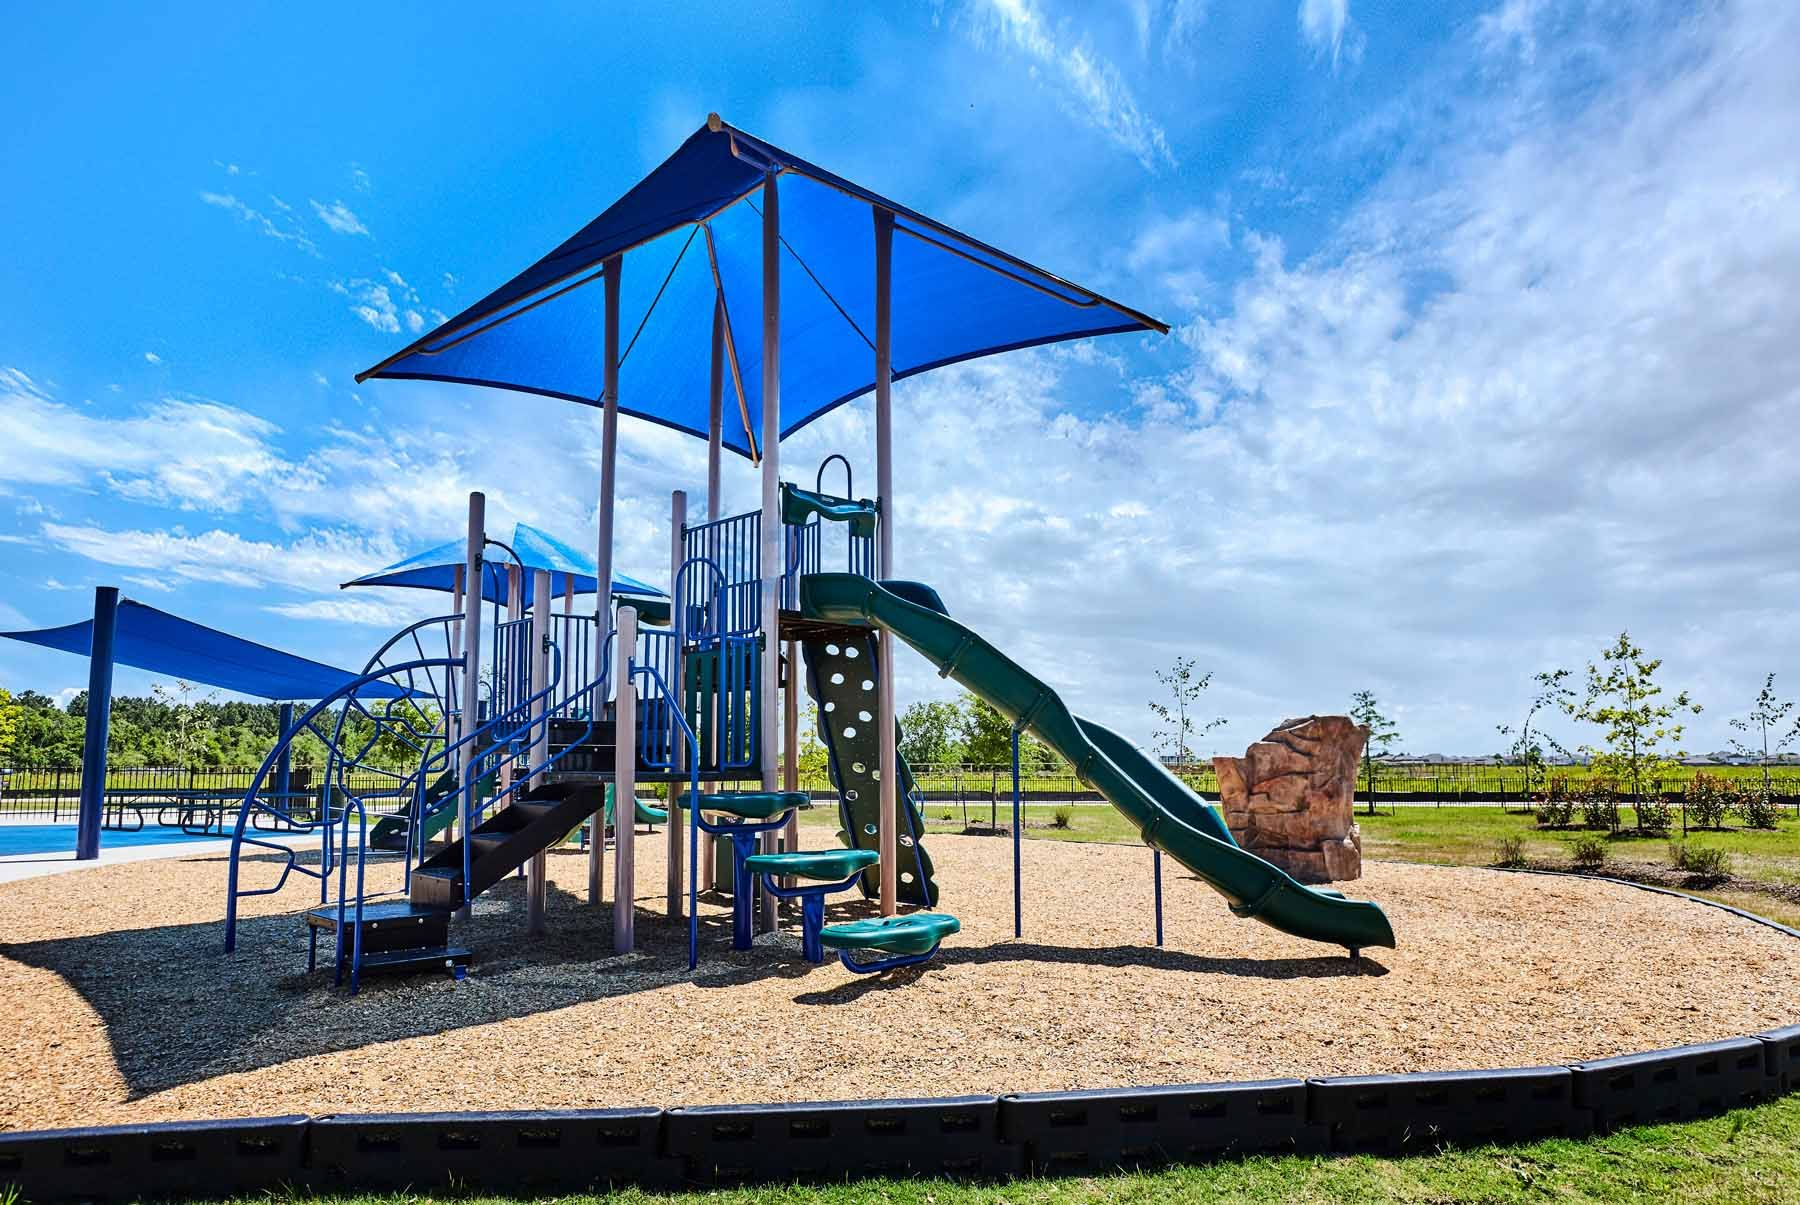 LGI Homes at Seacrest:Seacrest hosts a community park with a playground, splash pad and picnic areas!